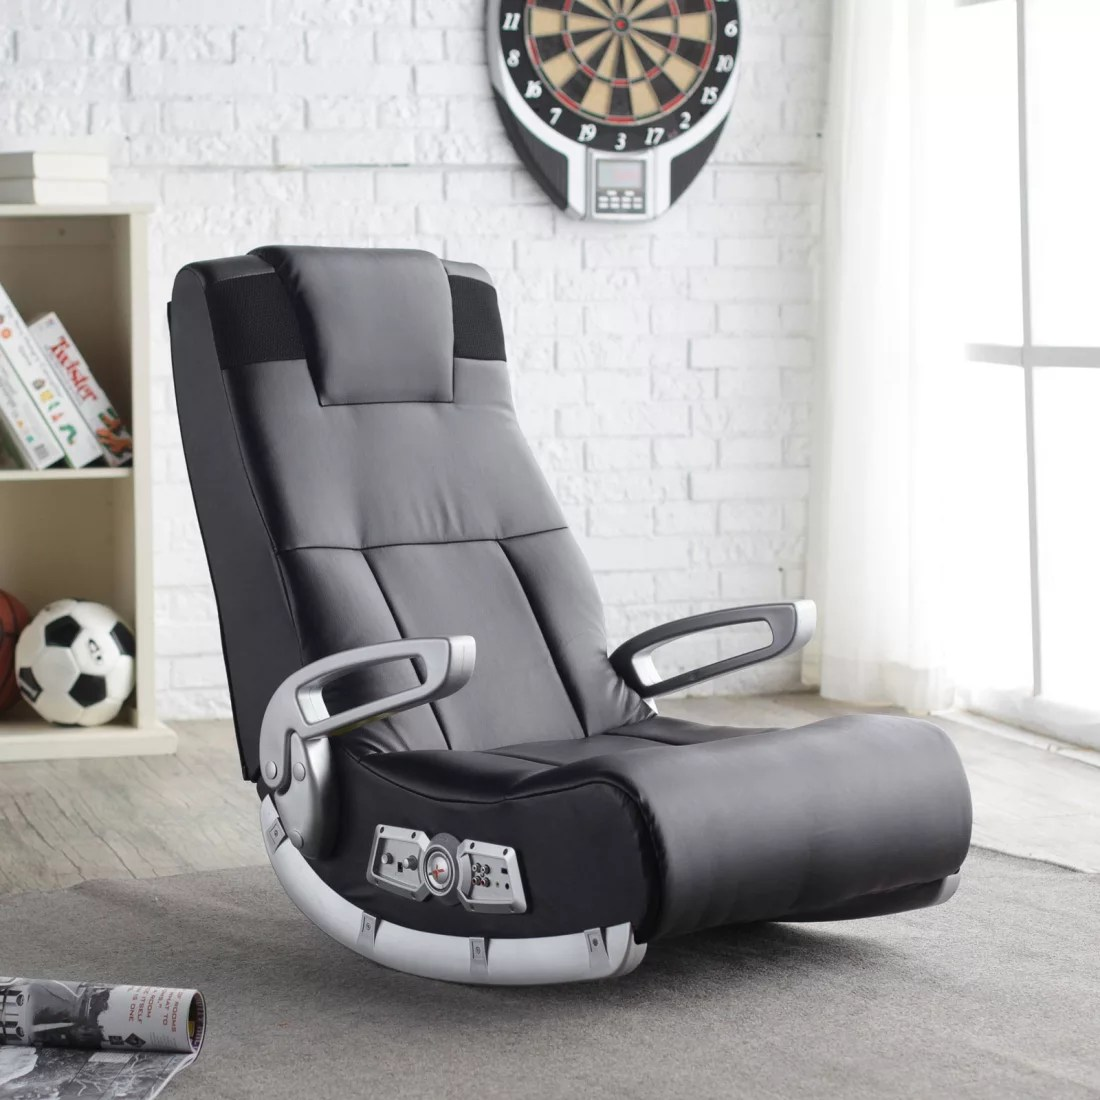 comfortable chair for gaming chairs office desk most geeks